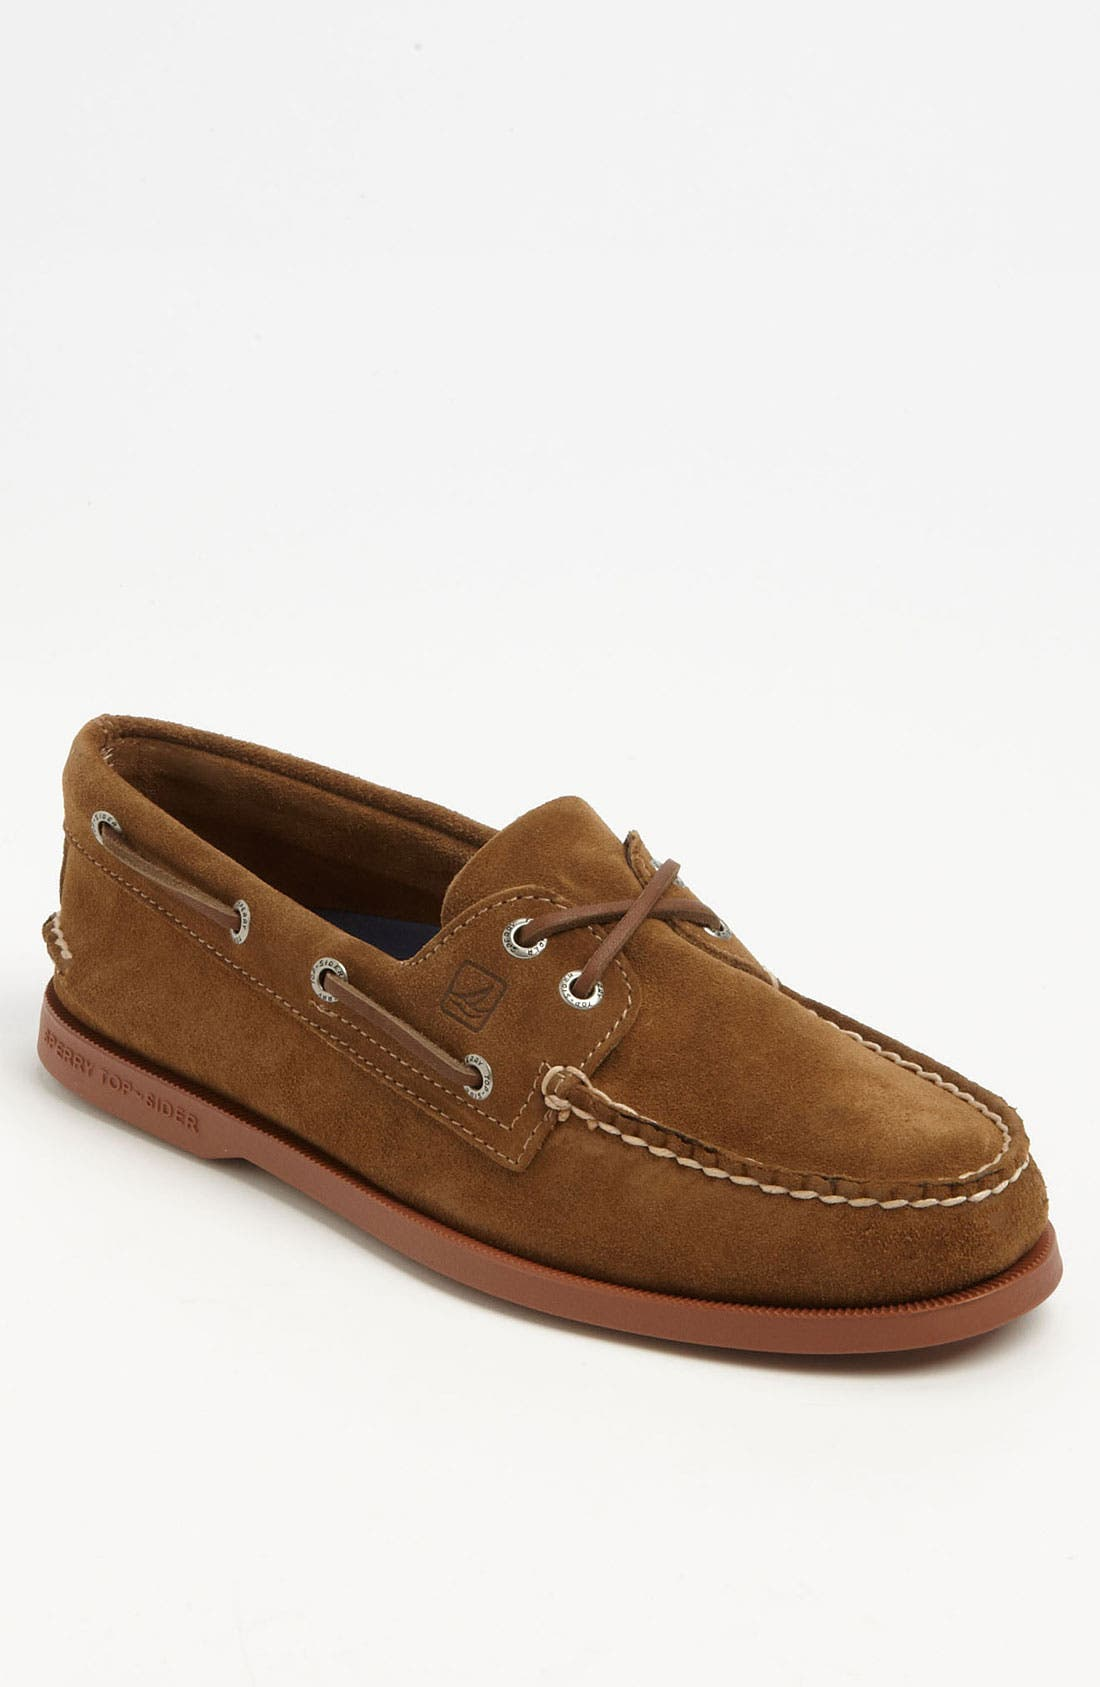 Alternate Image 1 Selected - Sperry Top-Sider® 'Authentic Original' Suede Boat Shoe